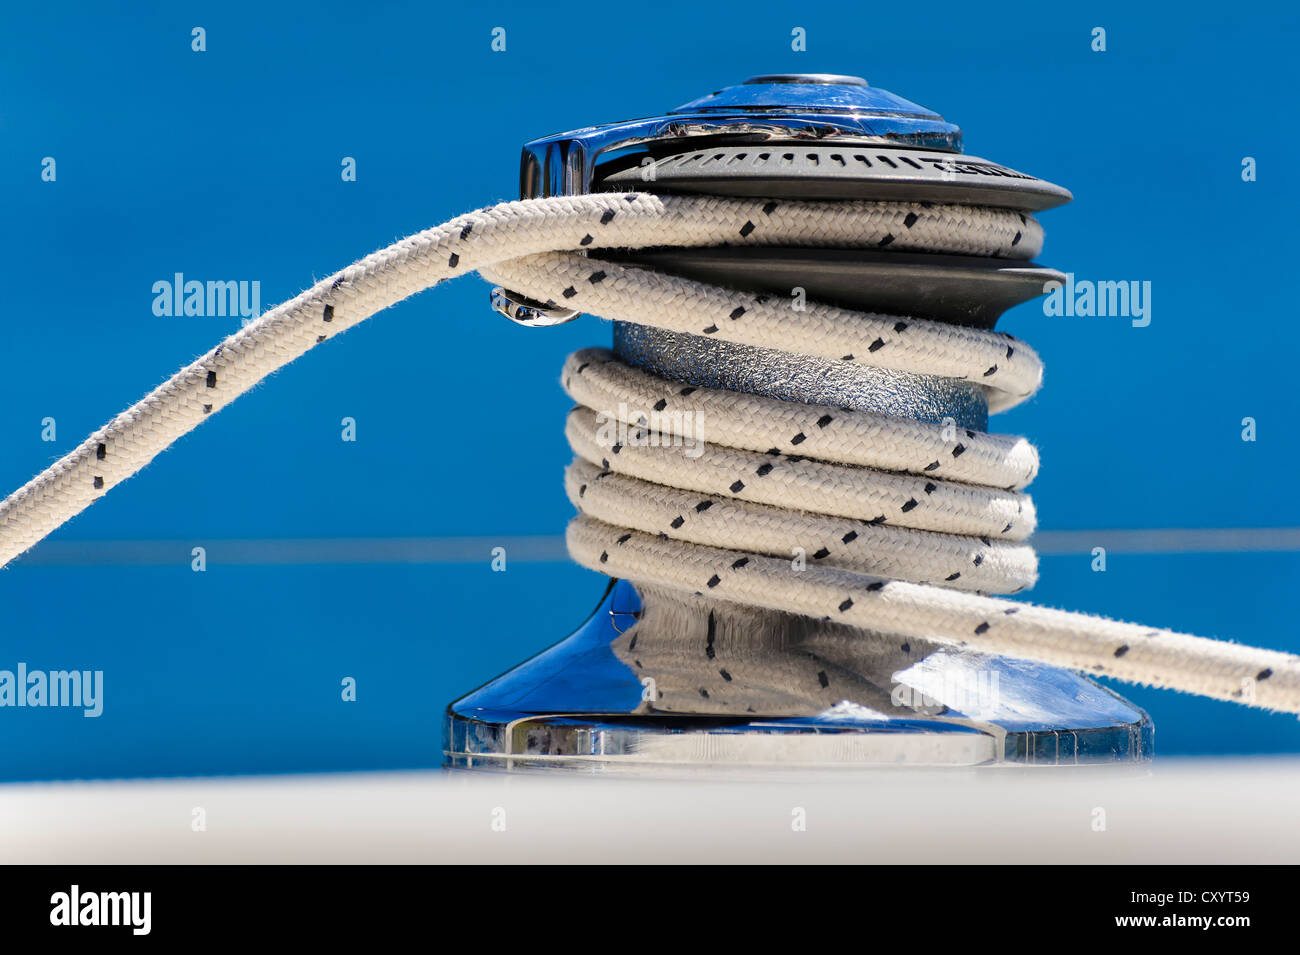 Sheet rope on a winch of a sailing yacht - Stock Image